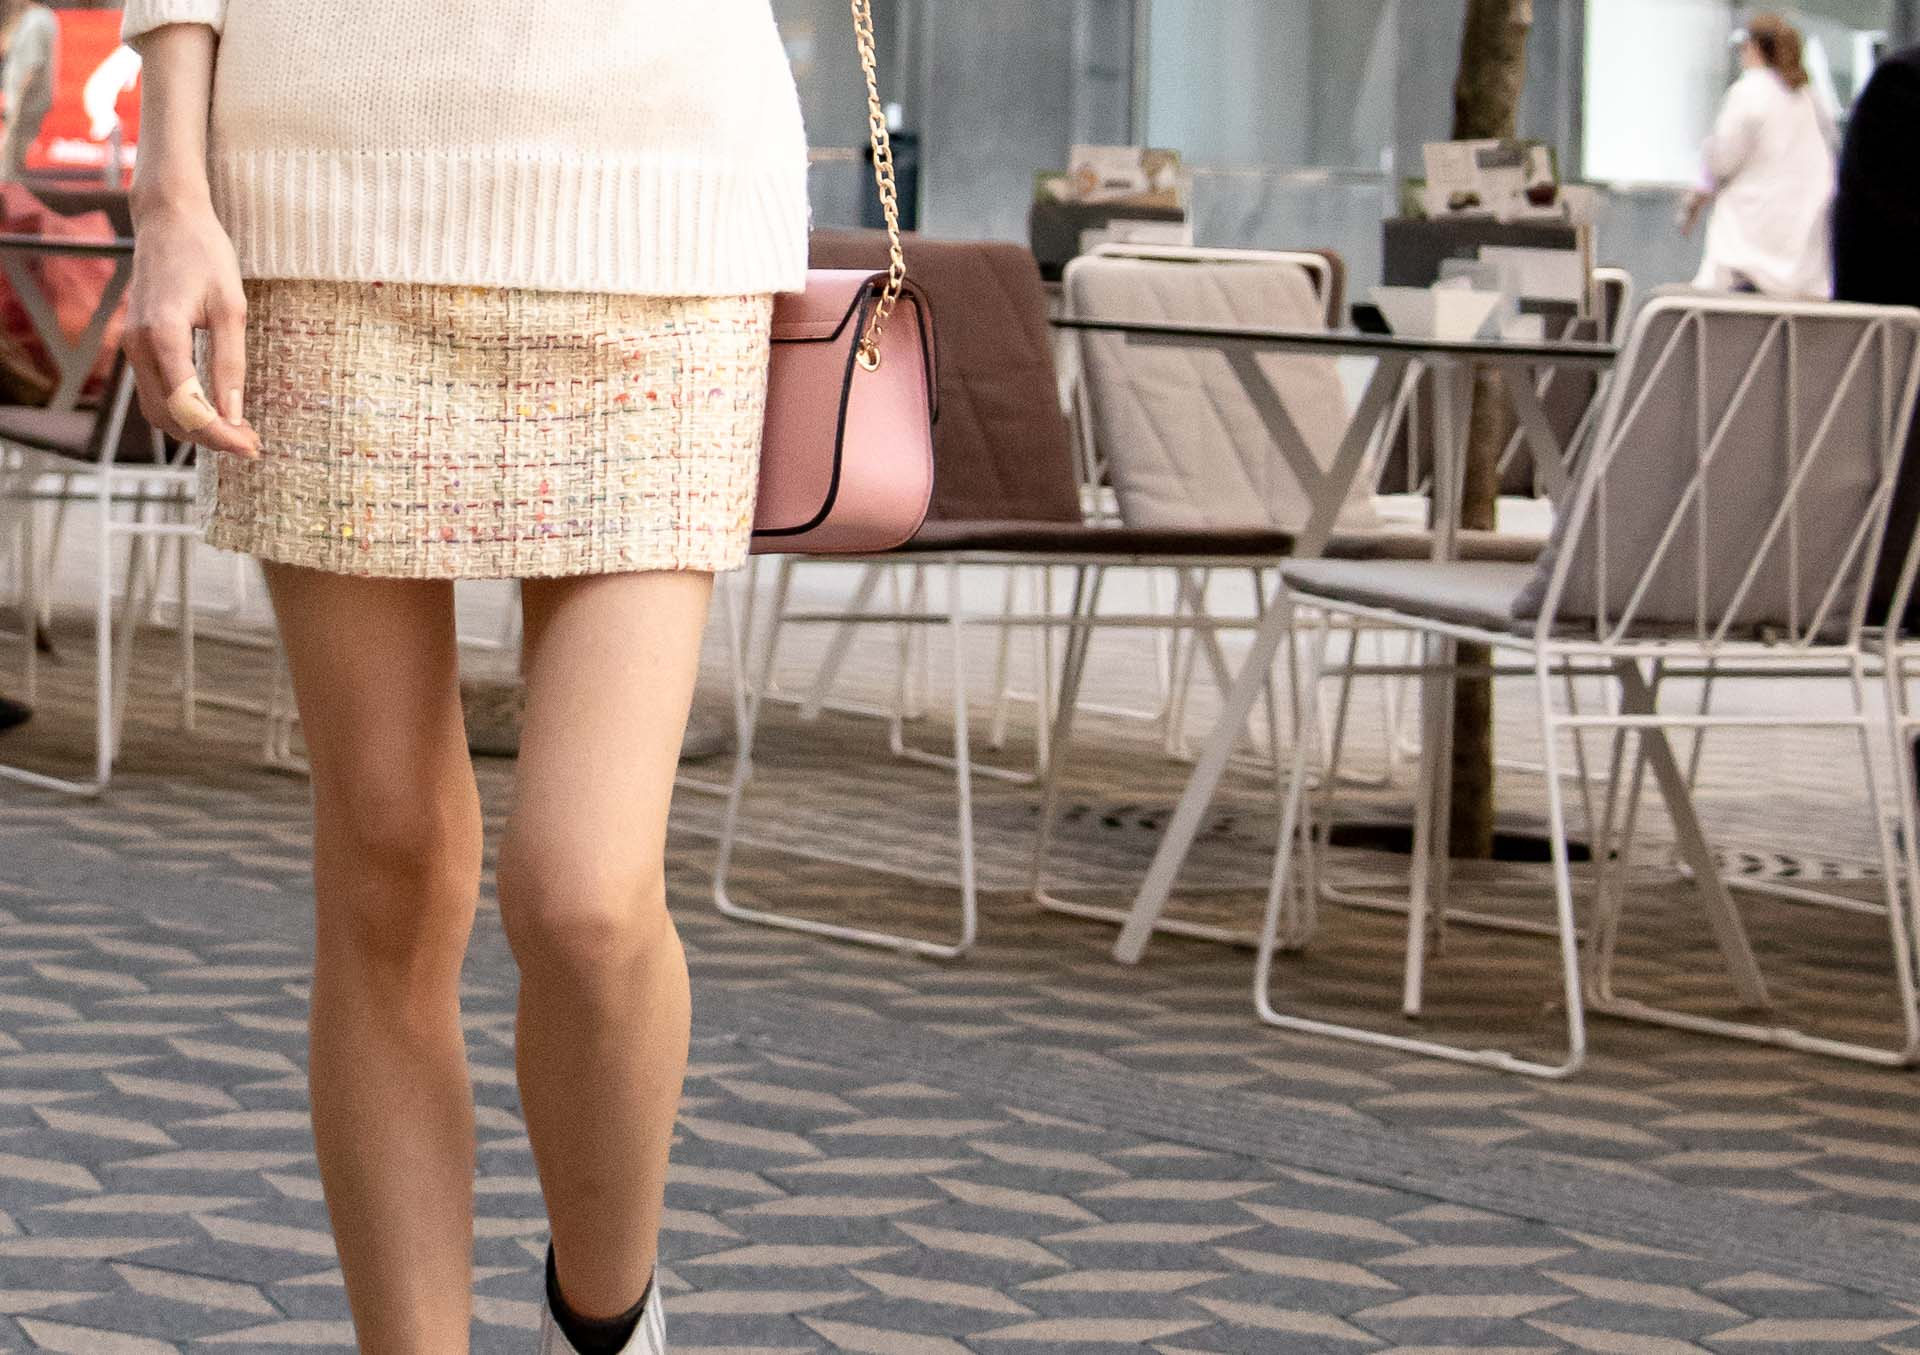 Beautiful Slovenian Fashion Blogger Veronika Lipar of Brunette from Wall dressed in white Ganni Western boots, yellow tweed skirt, white turtleneck sweater, chain strap shoulder bag for autumn brunch